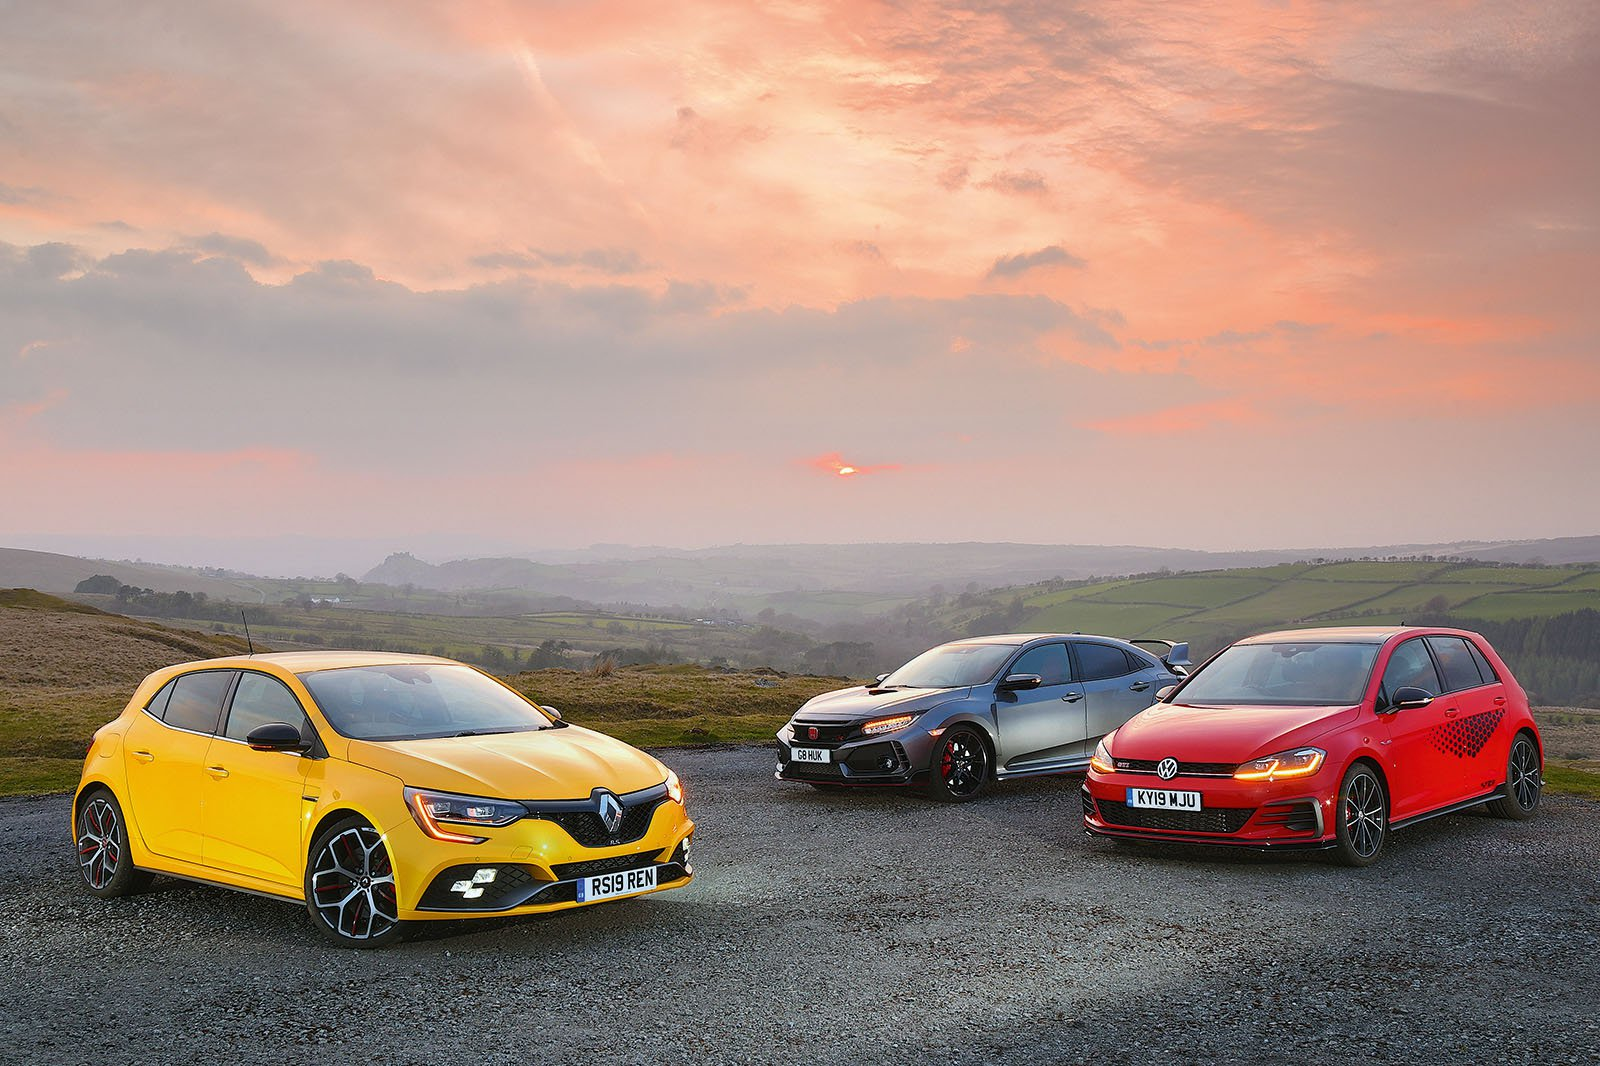 New Renault Megane RS & Volkswagen Golf GTI vs Honda Civic Type R